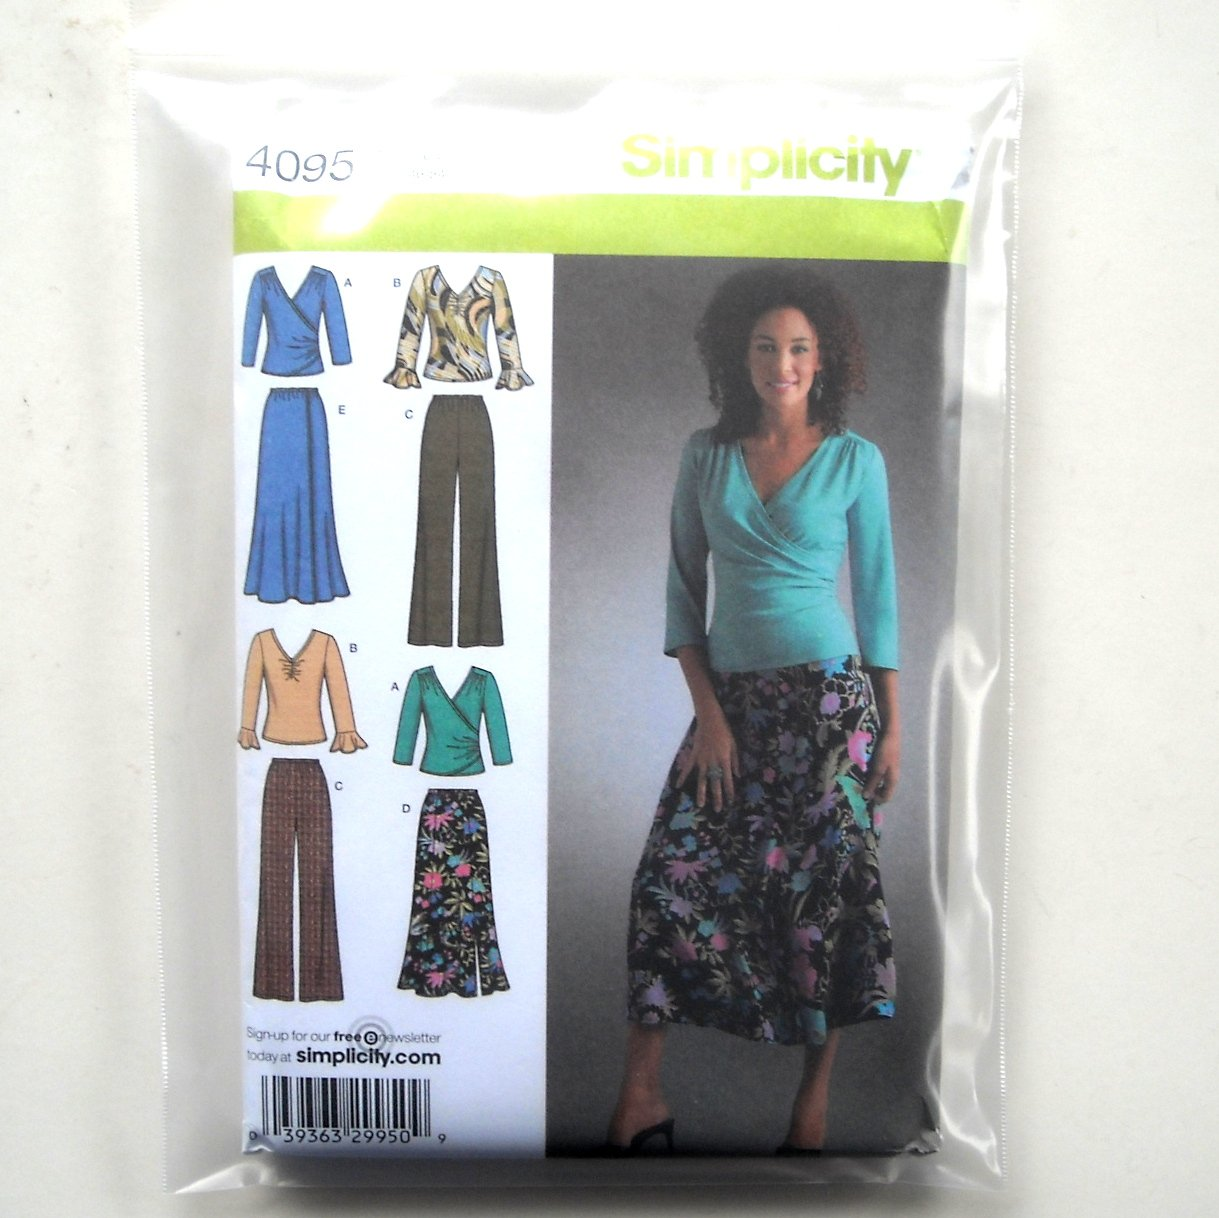 Misses Womens Pants Skirt Knit Top Plus Size Simplicity Sewing Pattern 4095